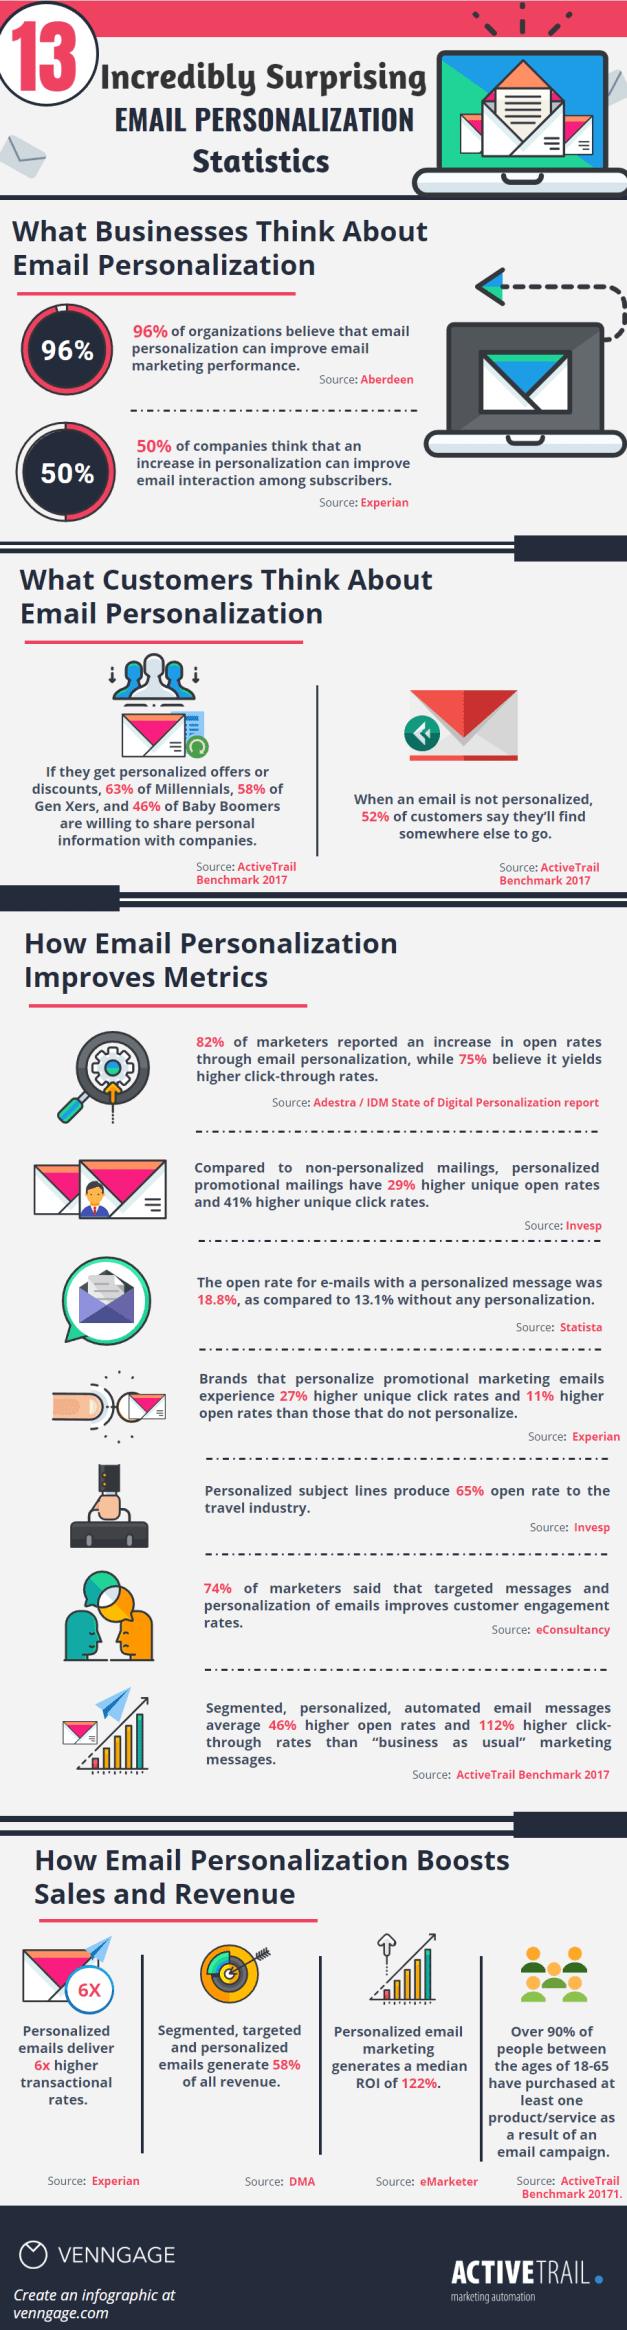 Tips for Personalizing Your E-Mail Efforts